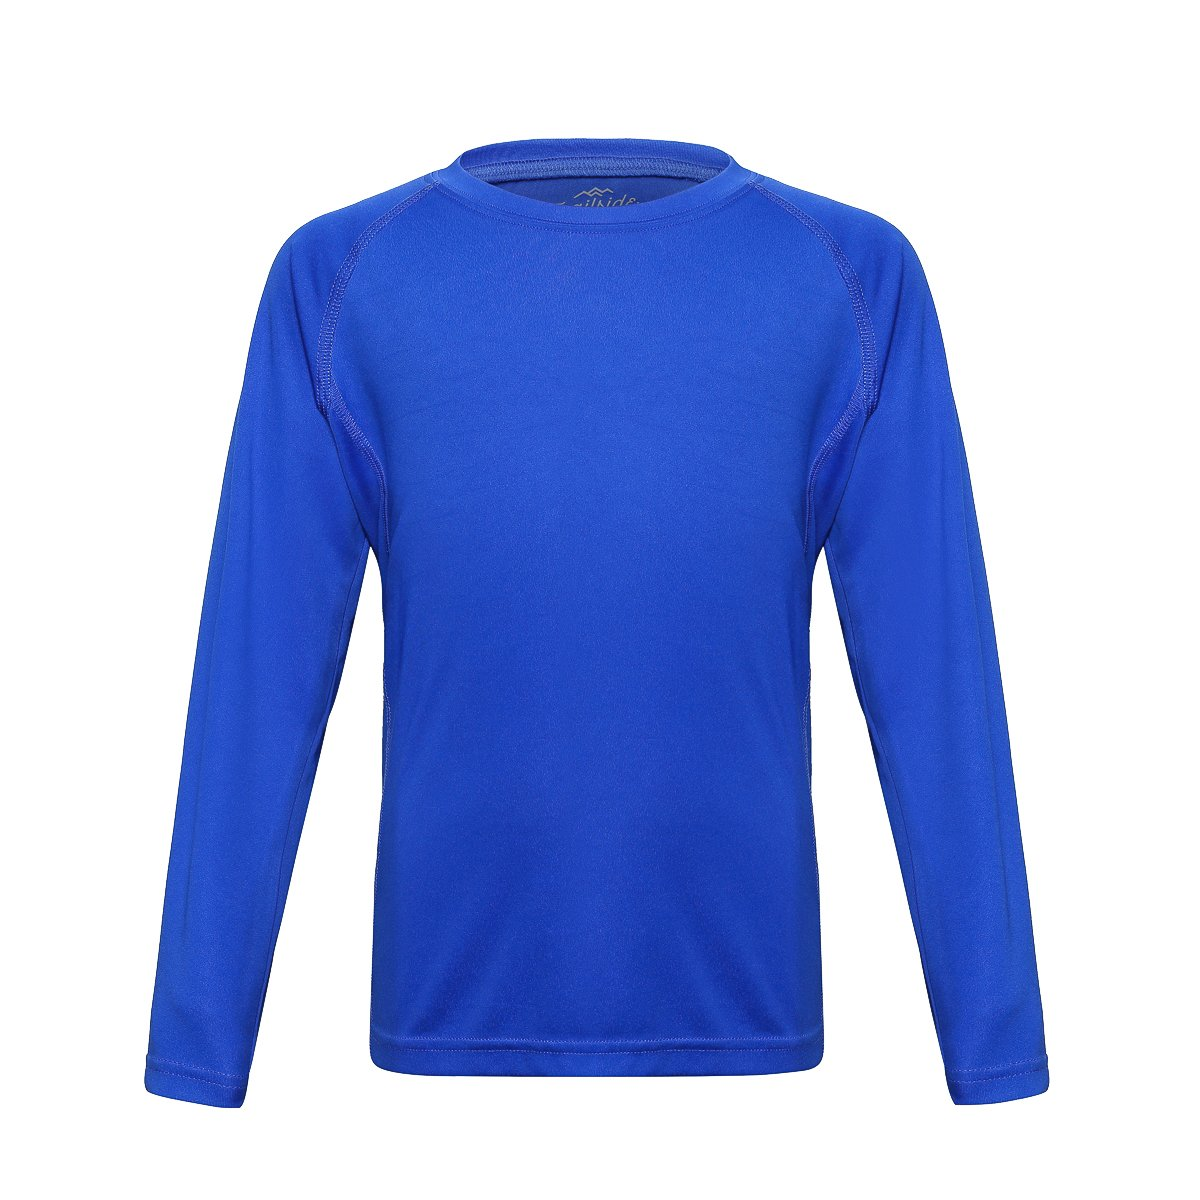 Trailside Supply Co. Big Boys' Quick-Dry Active Sport Long Sleeve Compression Baselayer T-Shirt